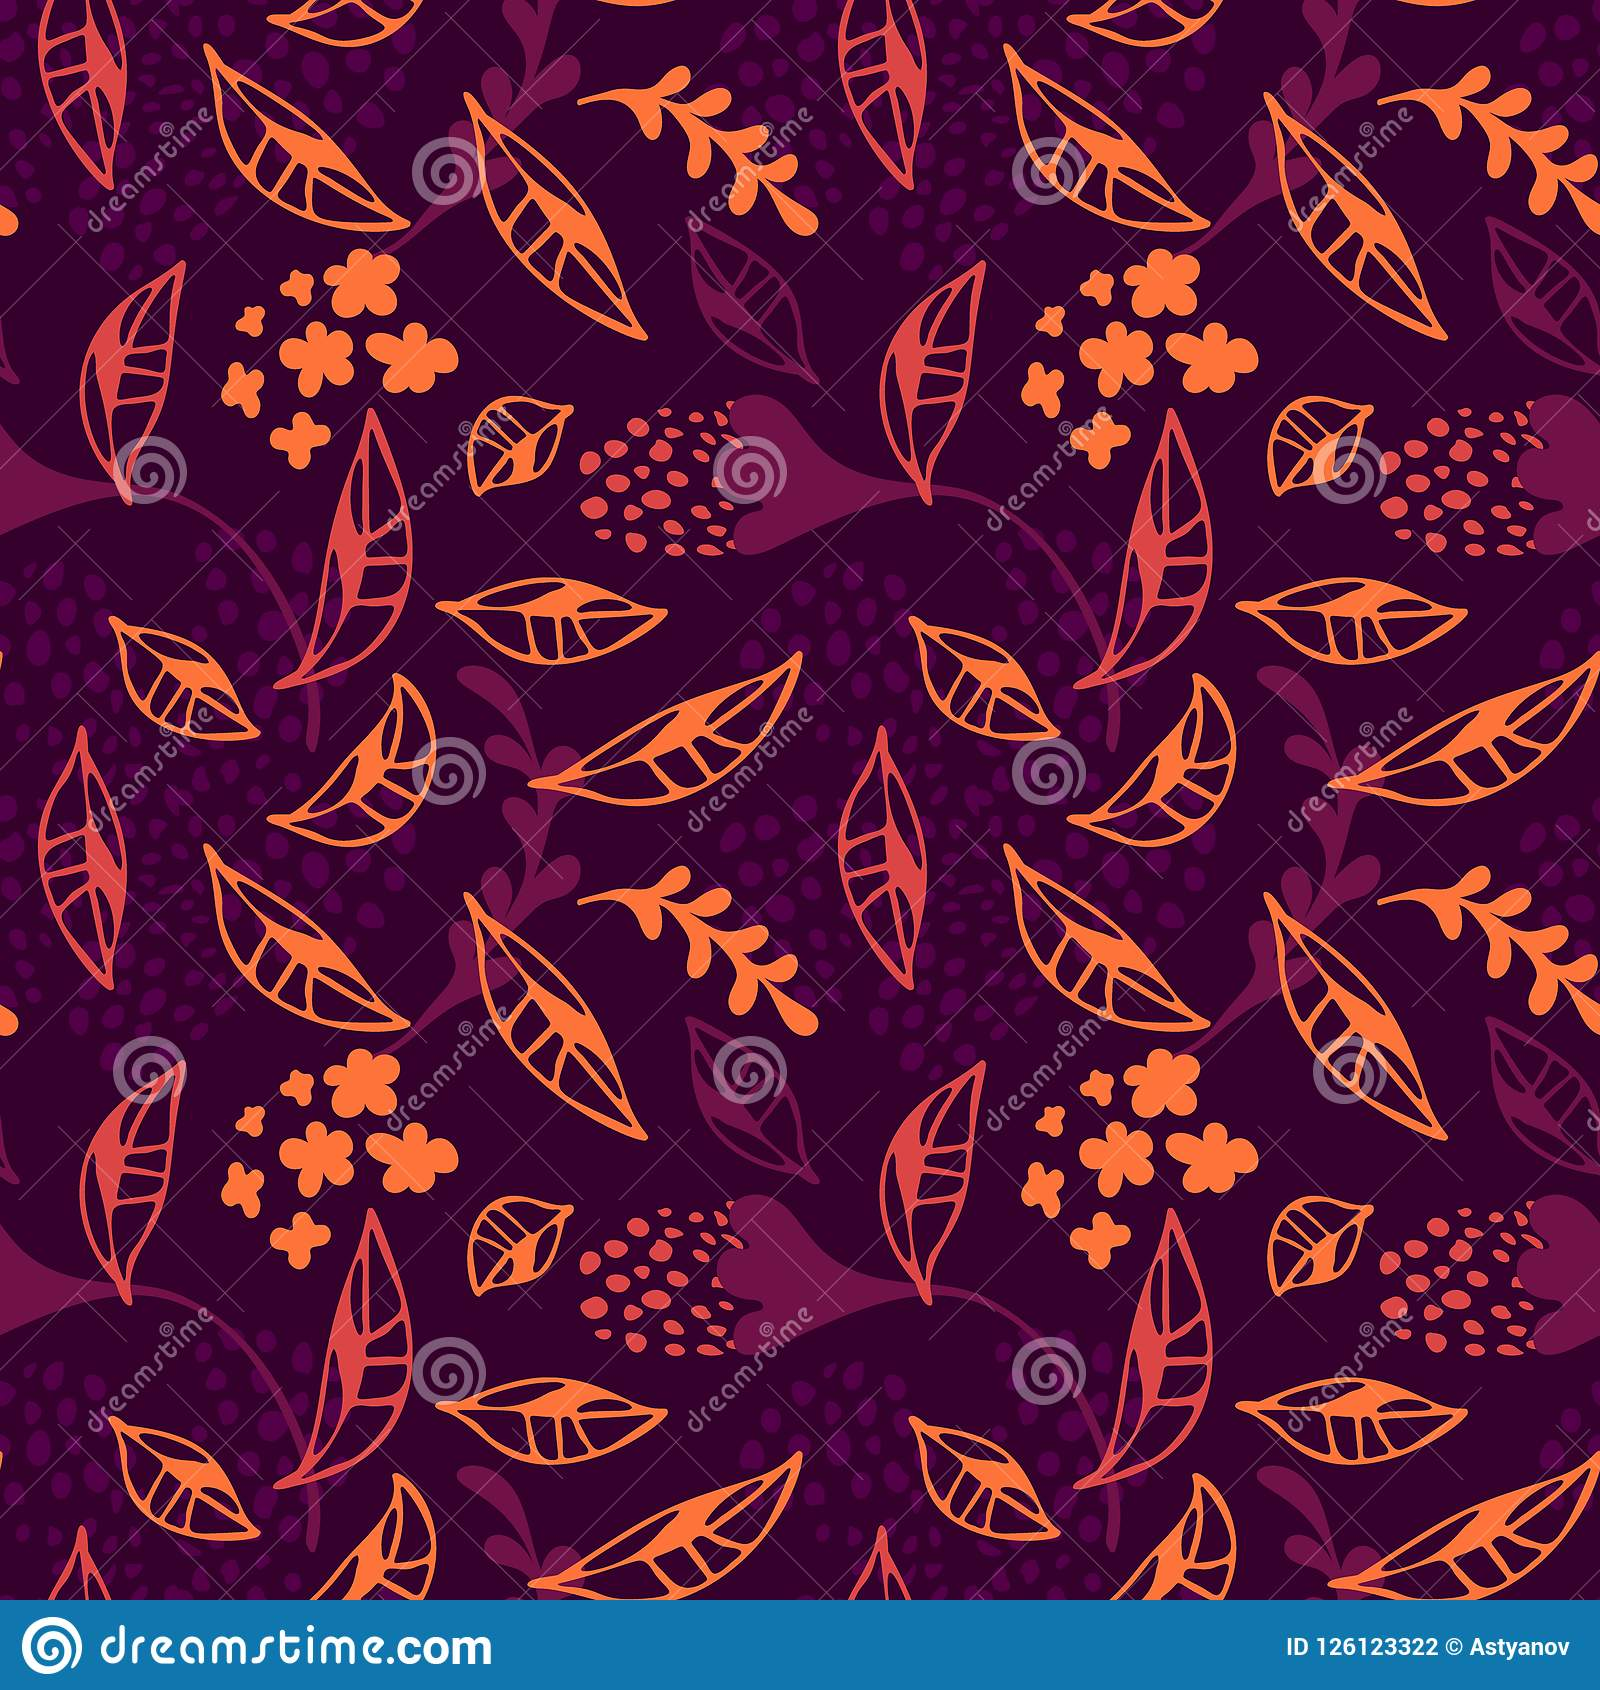 Trendy Modern Vector Abstract Autumn Leaves Fall Floral